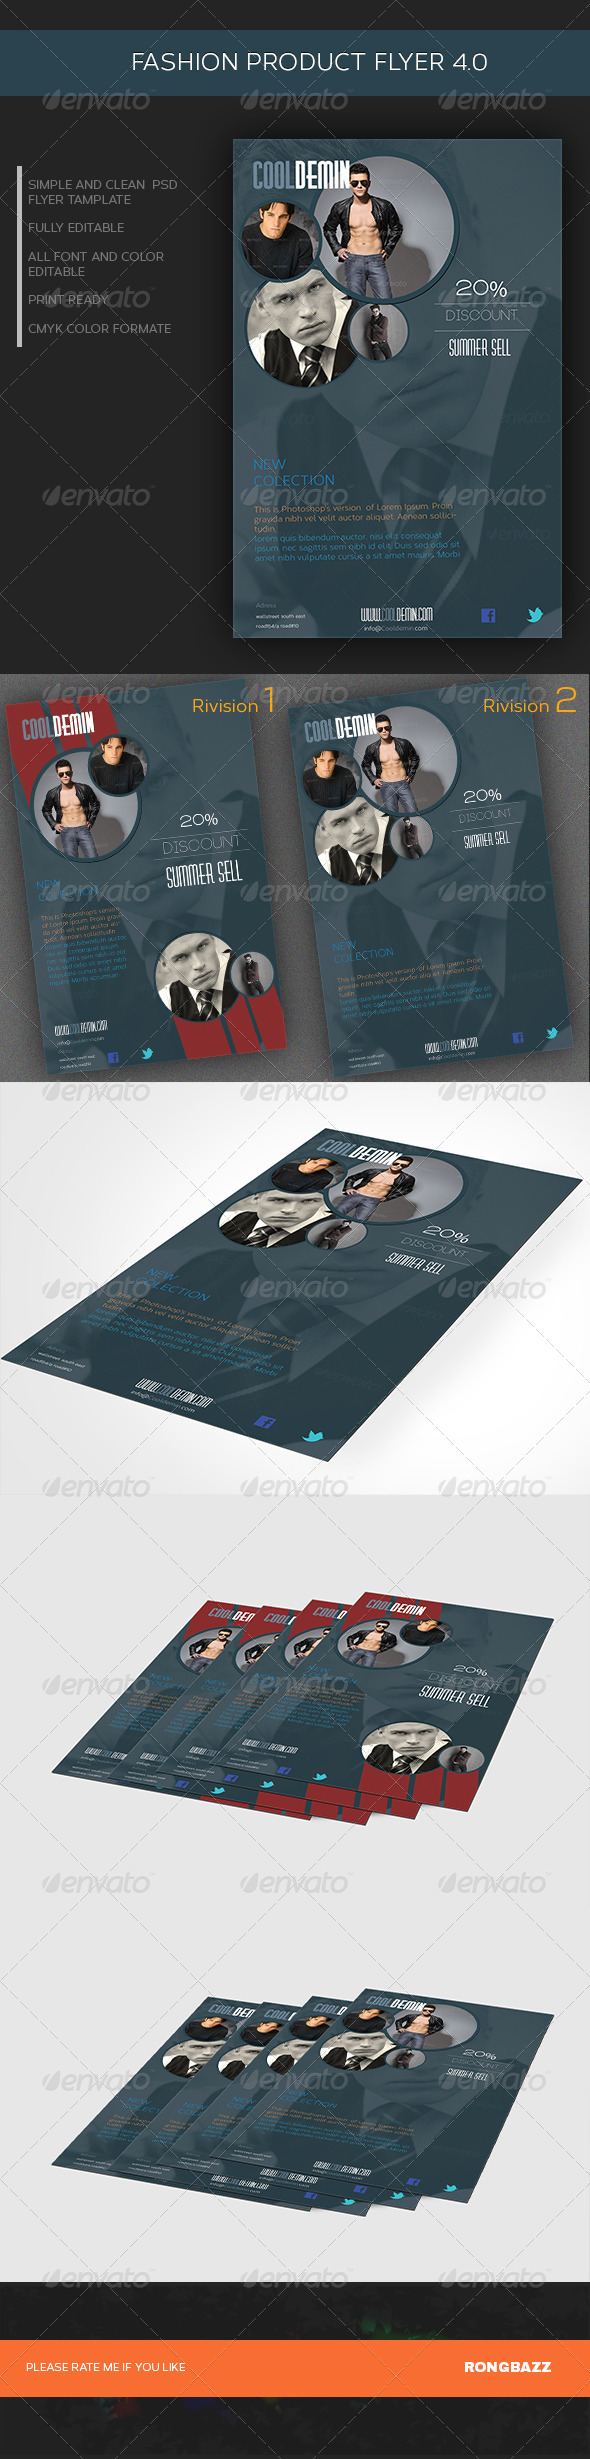 Fashion Product Flyer 4.0  - Commerce Flyers